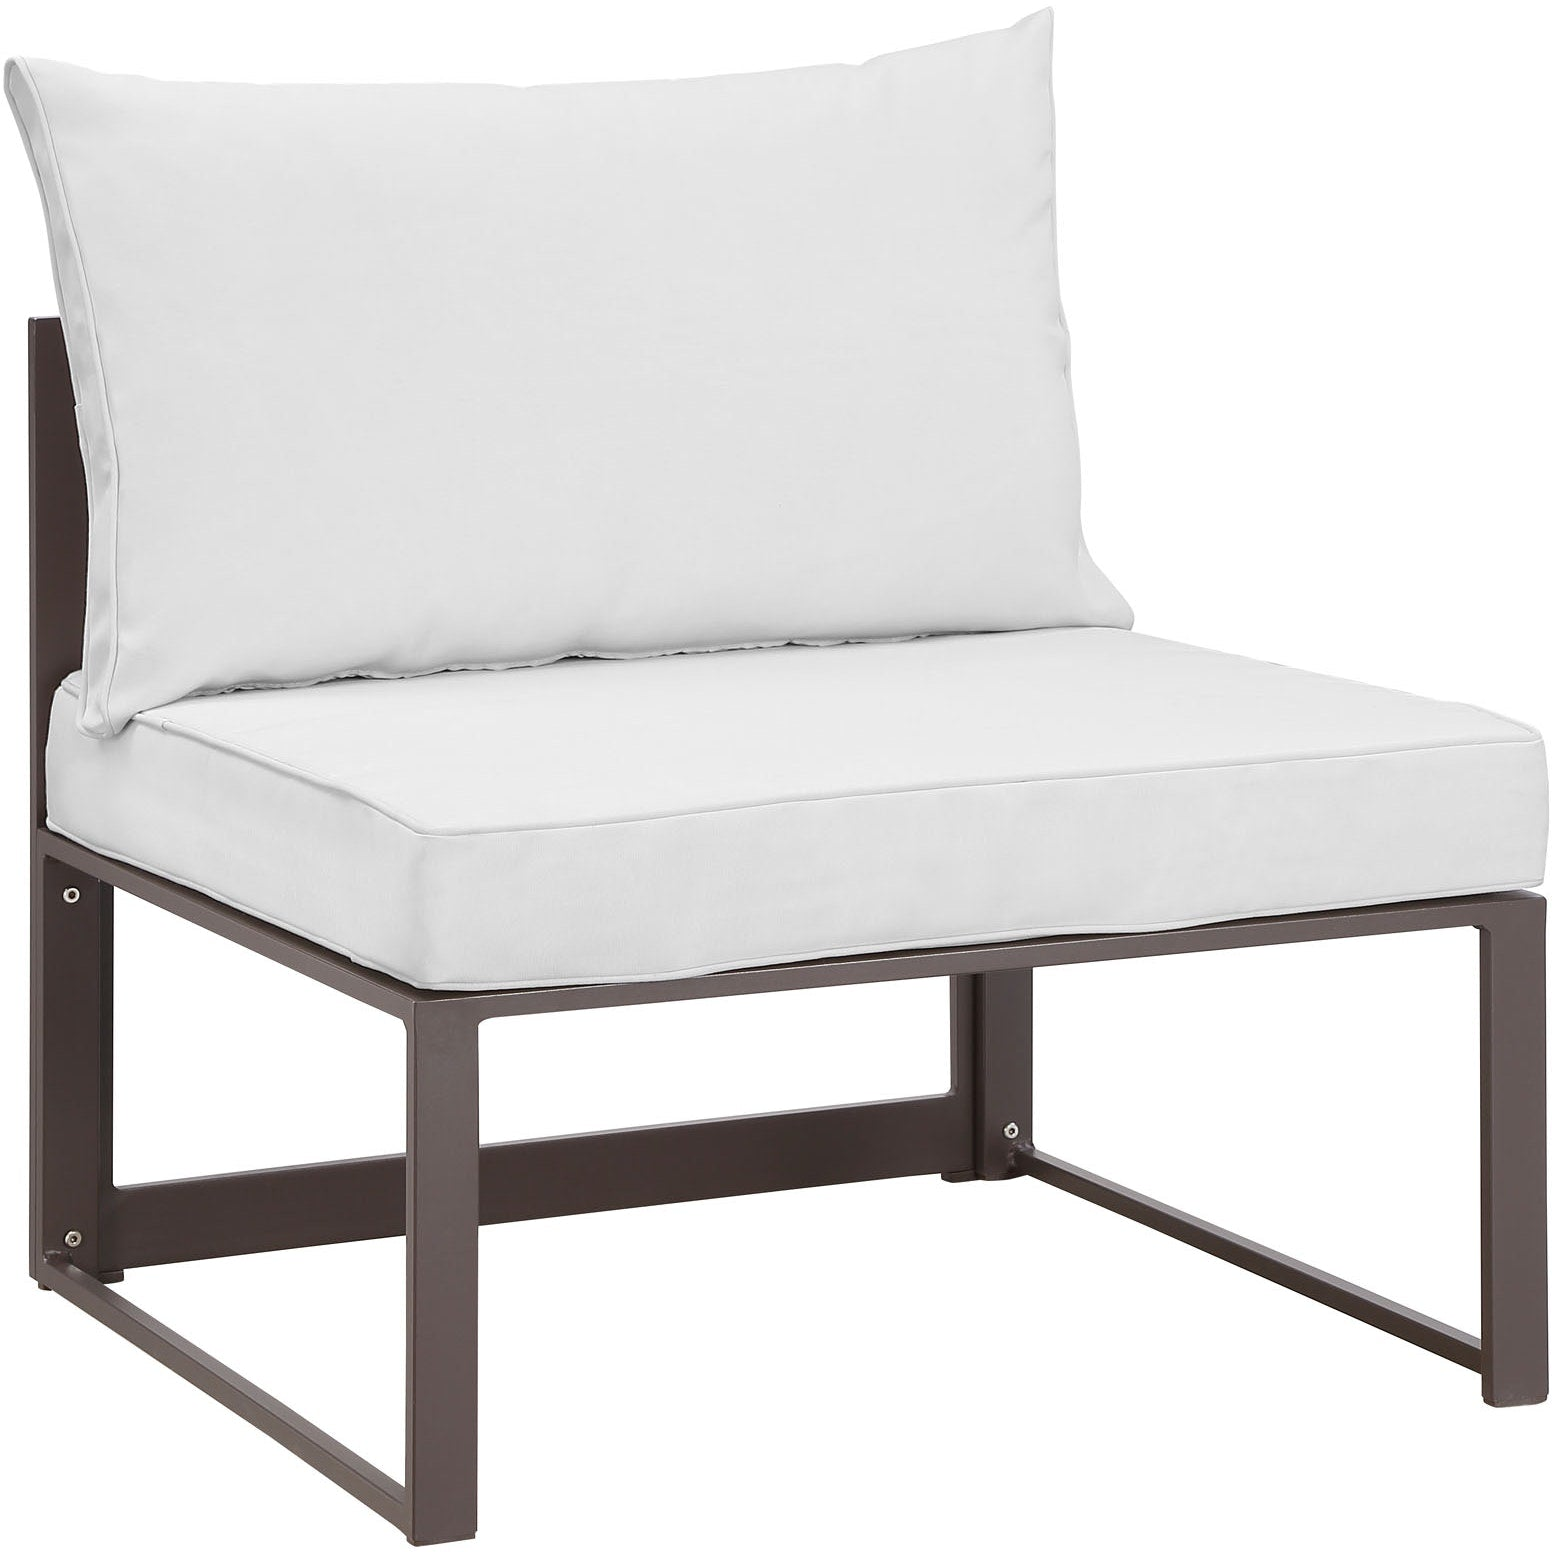 Fortuna 9 Piece Outdoor Patio Sectional Sofa Set - Brown White